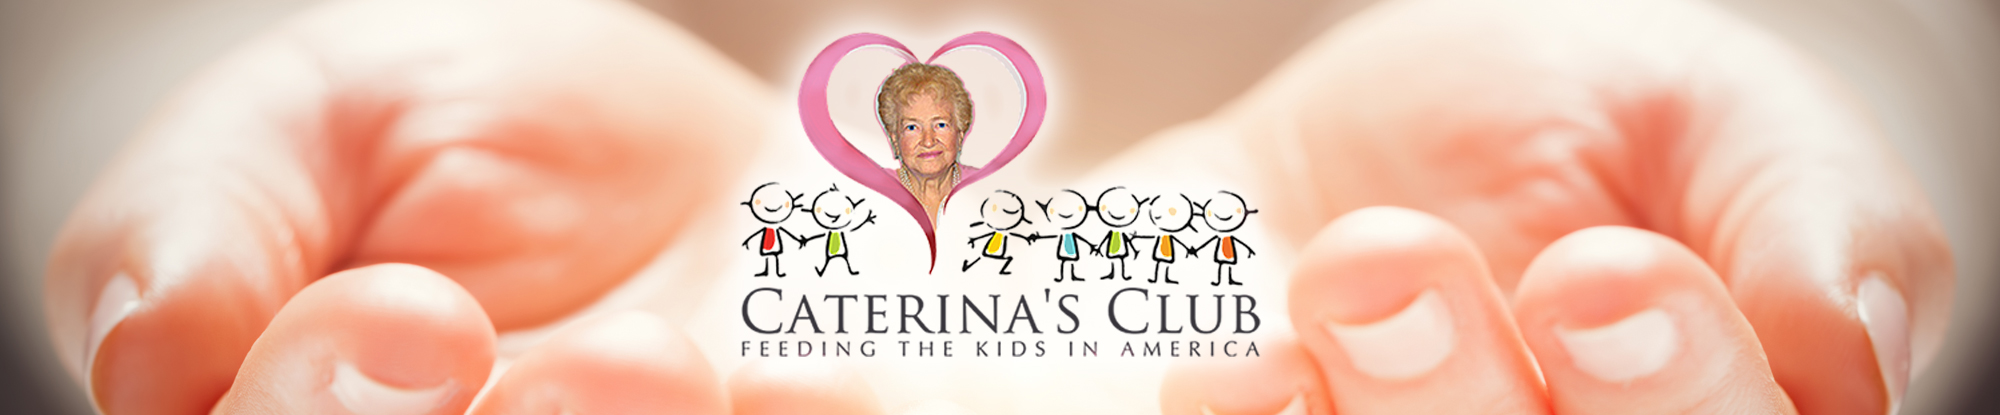 ViewSonic Makes Holiday Contribution to Caterina's Club During Annual Pastathon Fundraiser